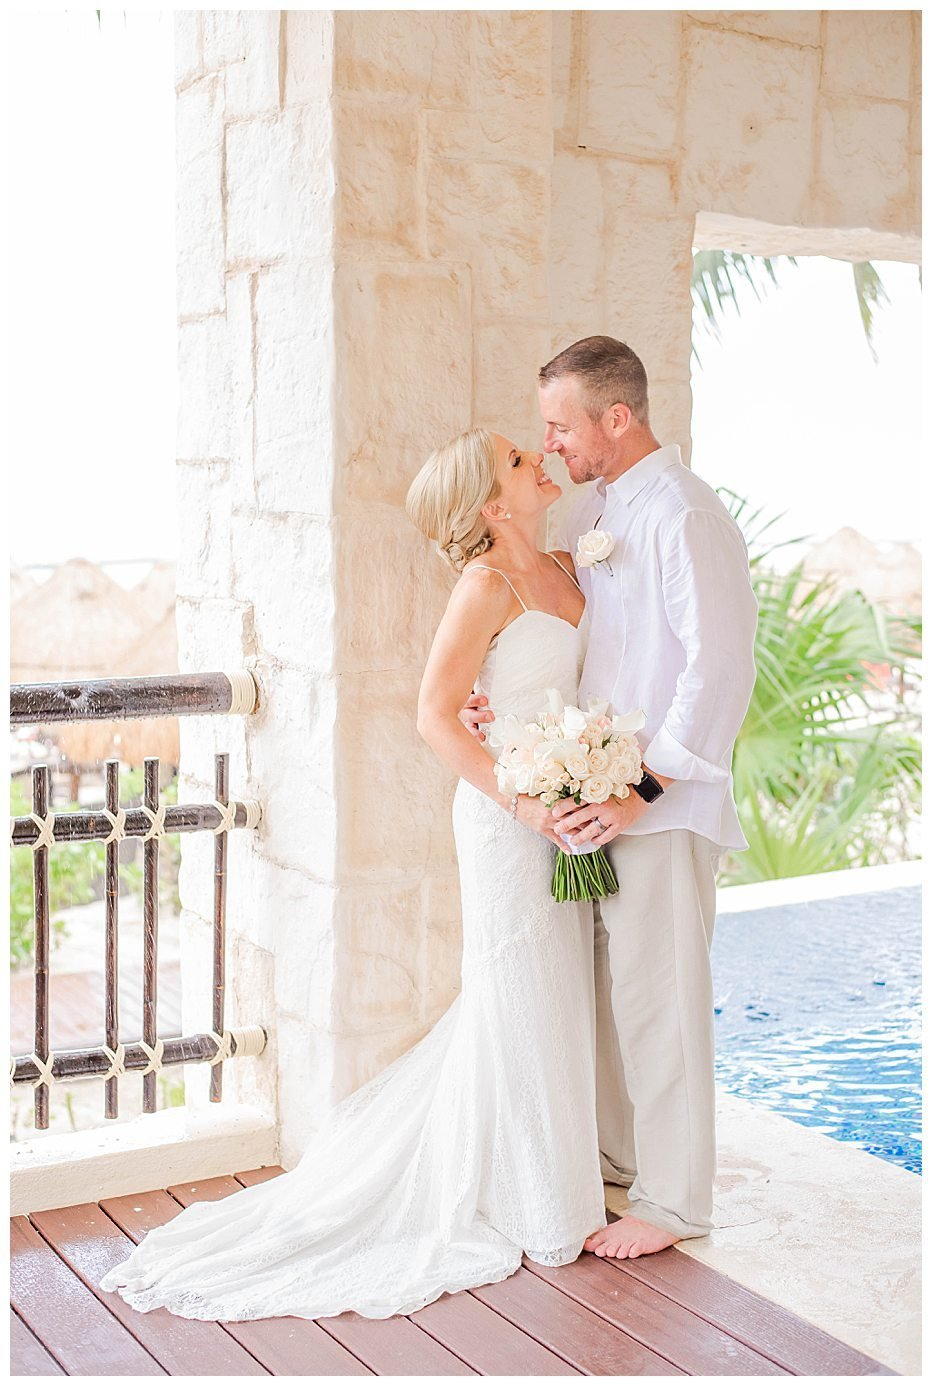 Under the Sun Photography | San Antonio, TX | Texas Wedding Photographer_0277